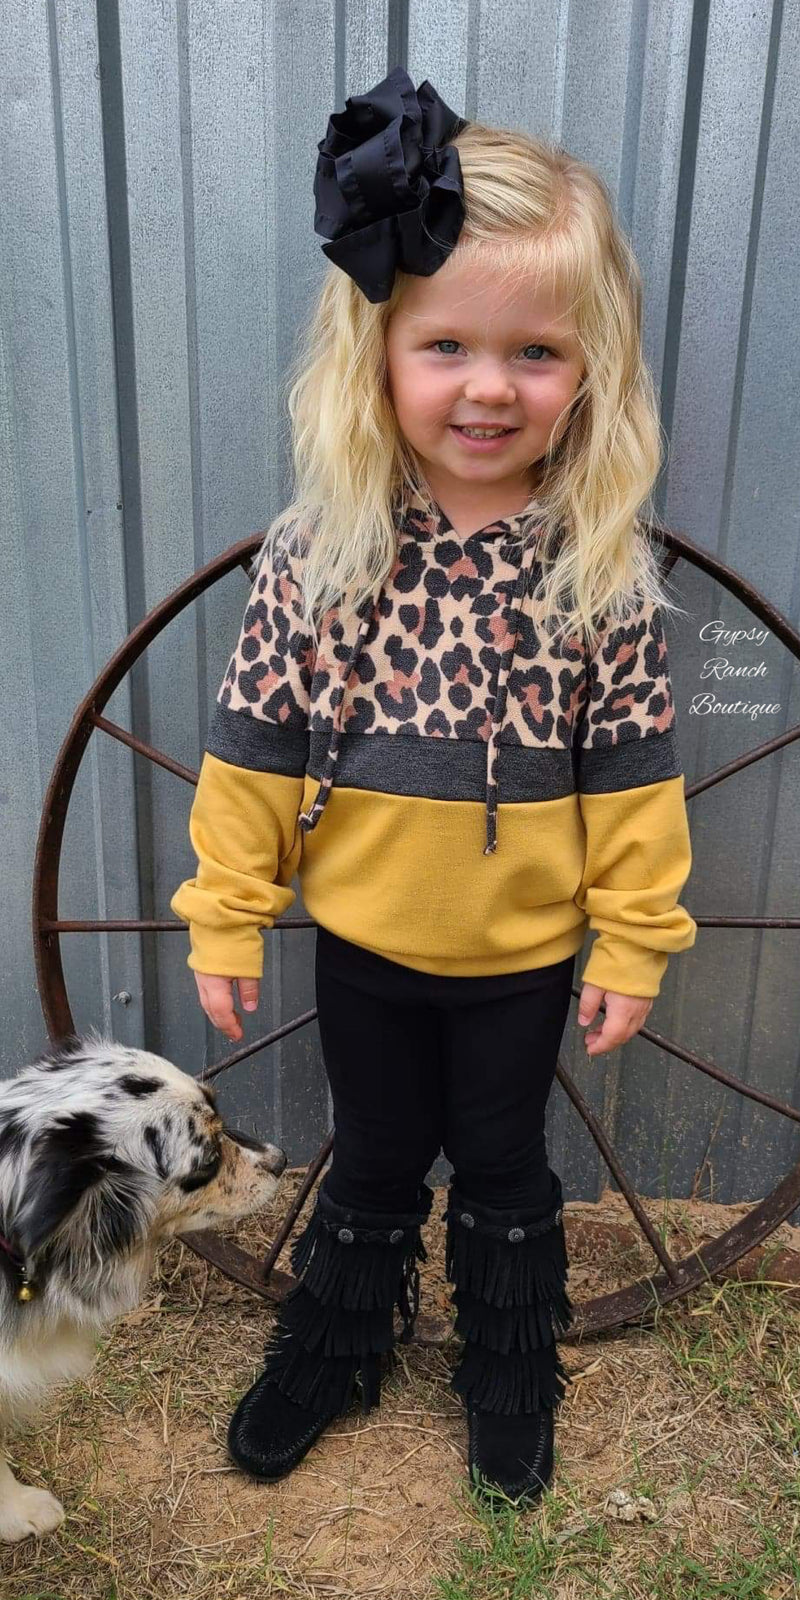 Cora Mustard Leopard Hooded Top - Kids